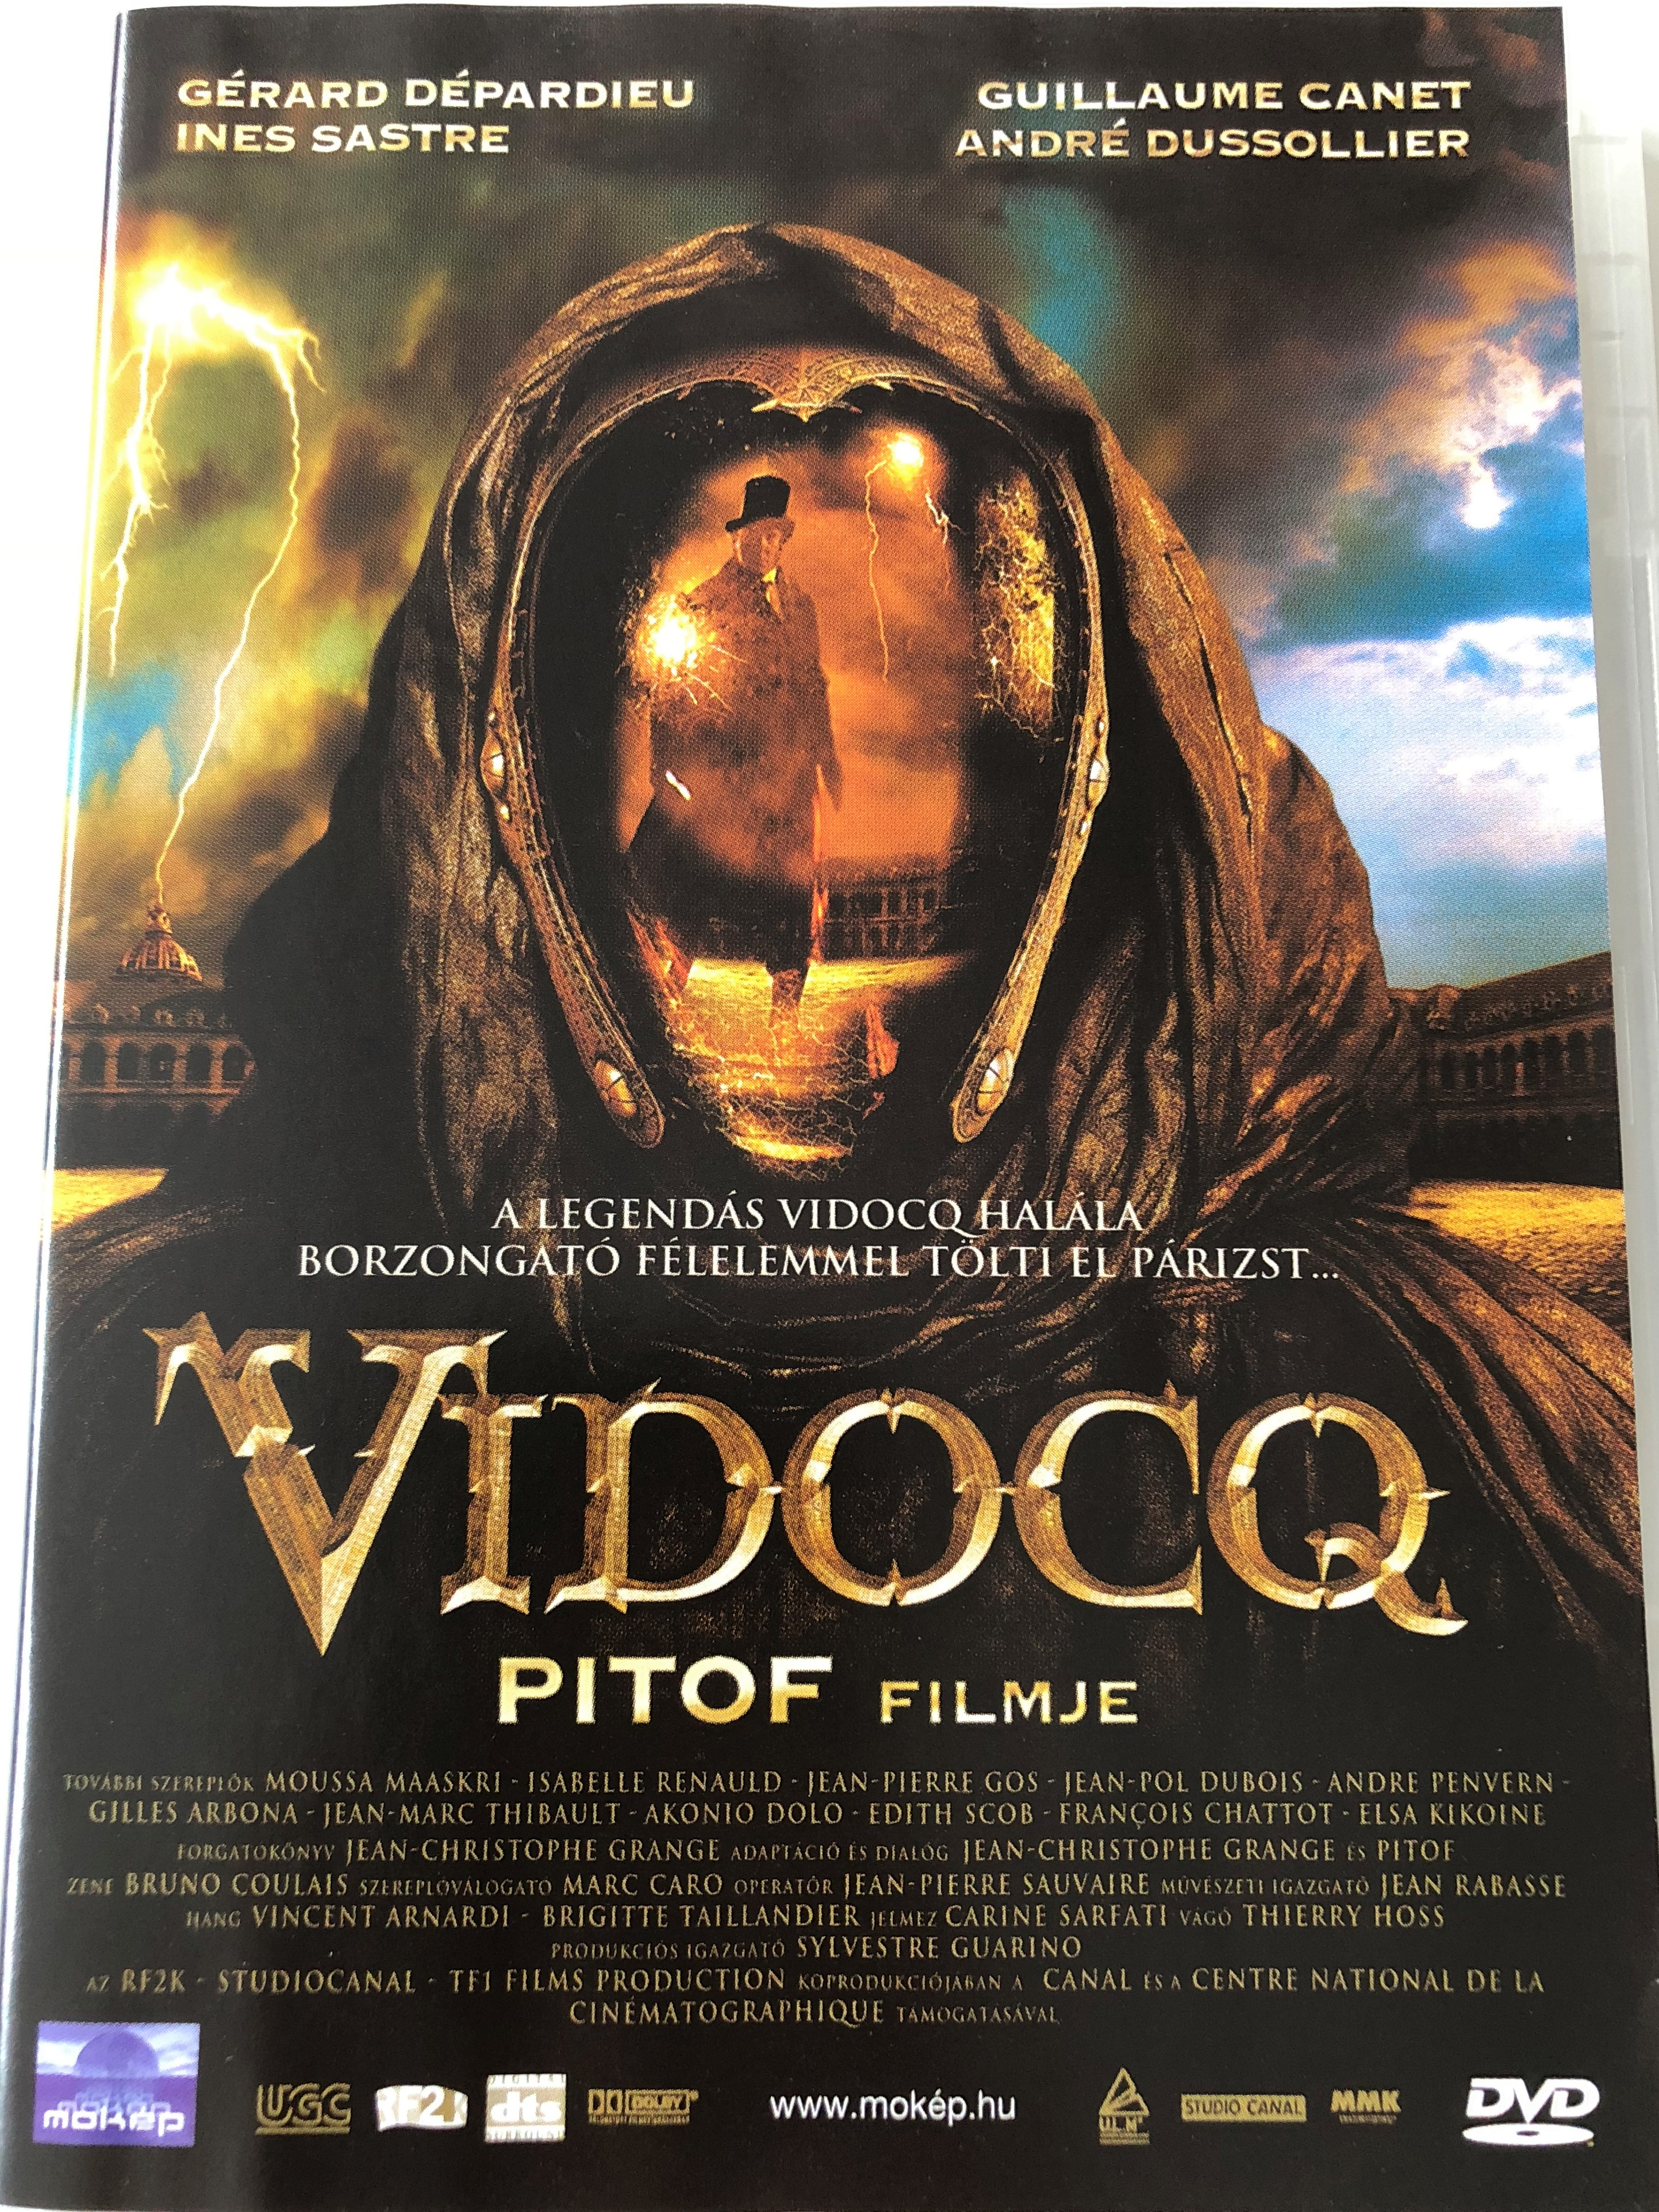 -vidocq-dvd-2001-directed-by-jean-christophe-pitof-comar-starring-g-rard-depardieu-guillaume-canet-in-s-sastre-andr-dussollier-1-.jpg